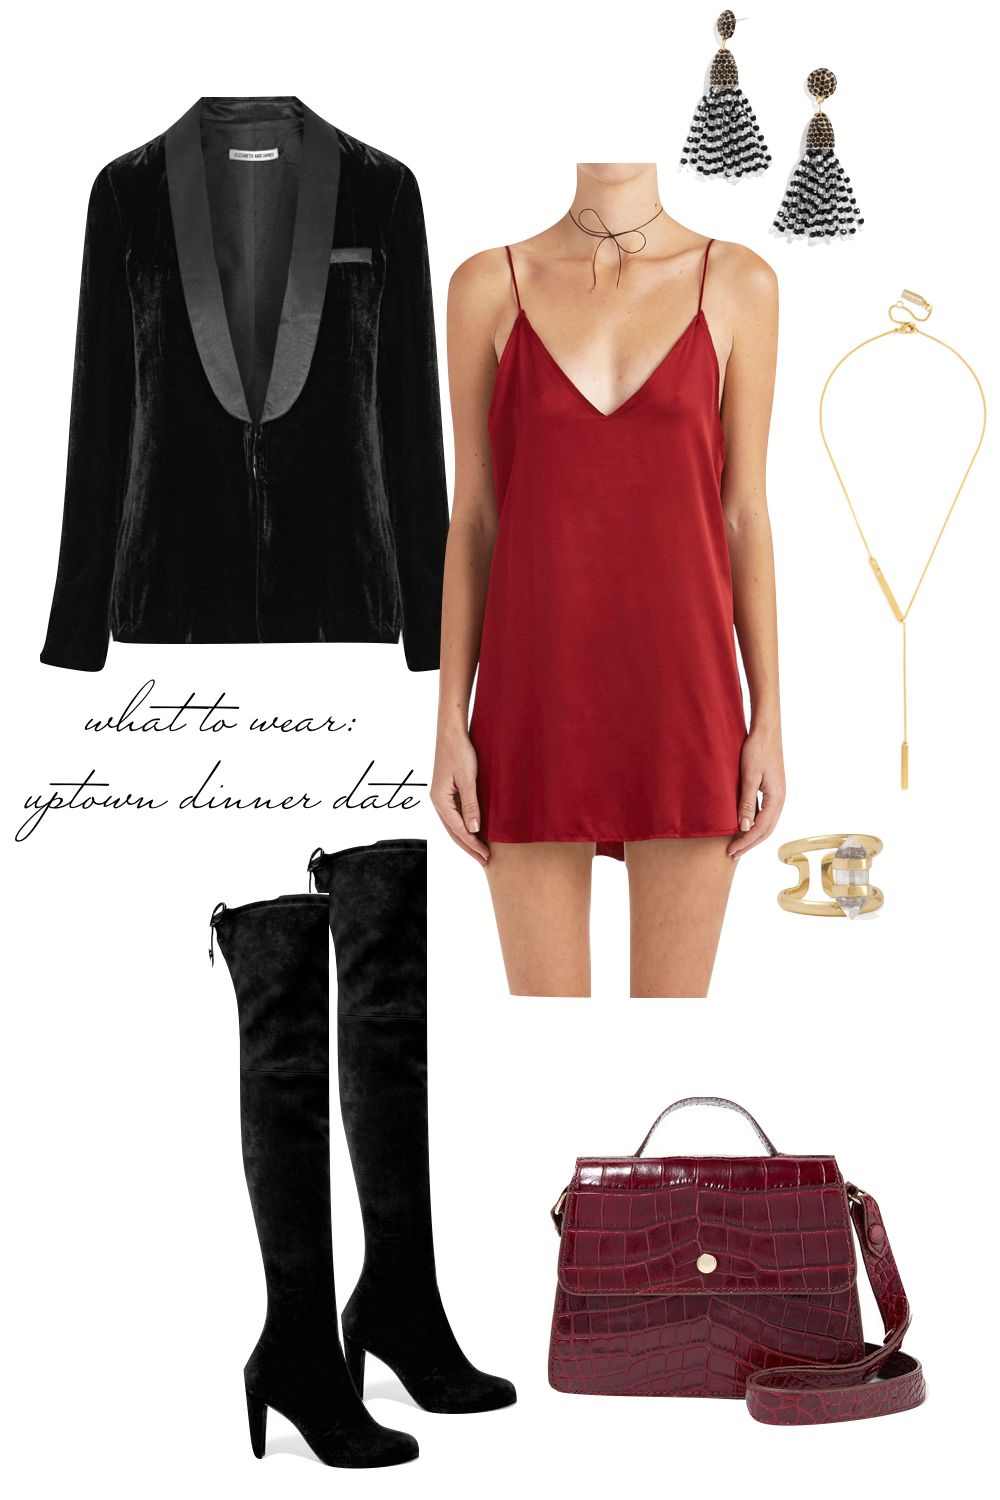 Winter Date Night Outfits Capsule Wardrobe Closet